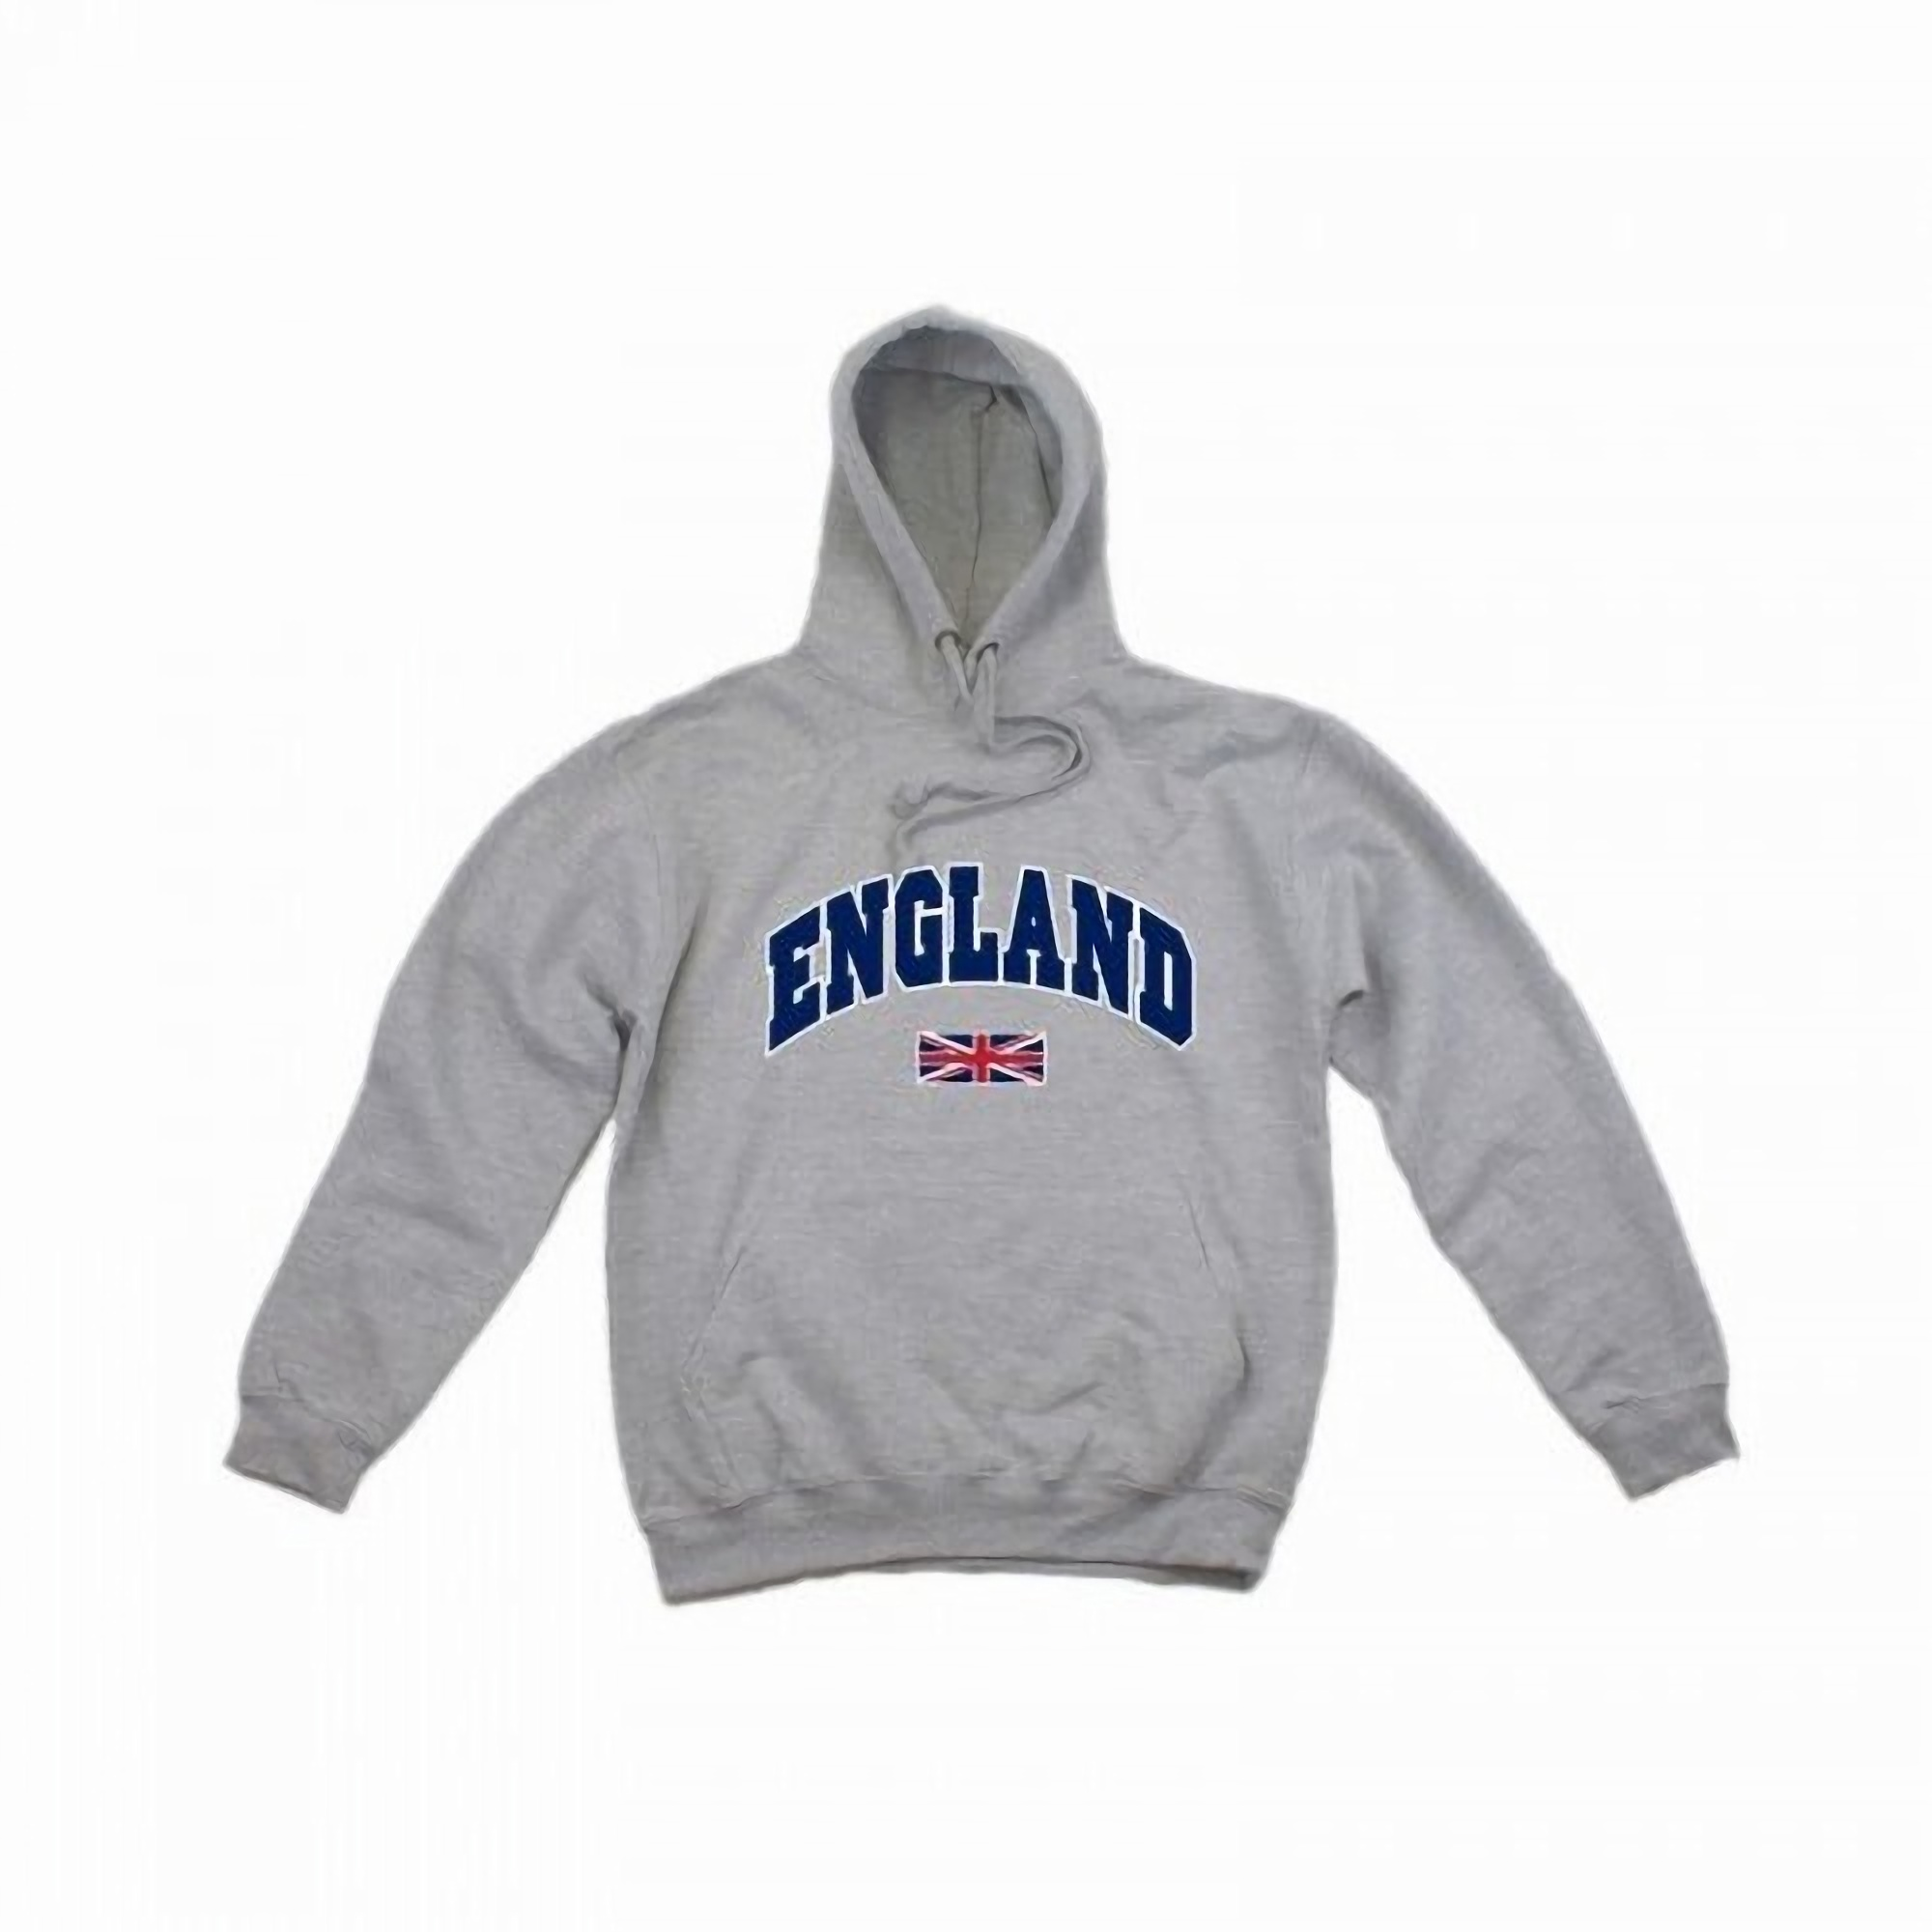 Make Big Blue Nation proud when you shop for Kentucky Sweatshirts at the Official University of Kentucky Fan Shop. This is the place for UK Wildcats Sweatshirt or Hoodie for the Wildcats fan featuring Crewnecks and Hoodies. Shop Kentucky Wildcats hoodies and fleece at the Official Store.